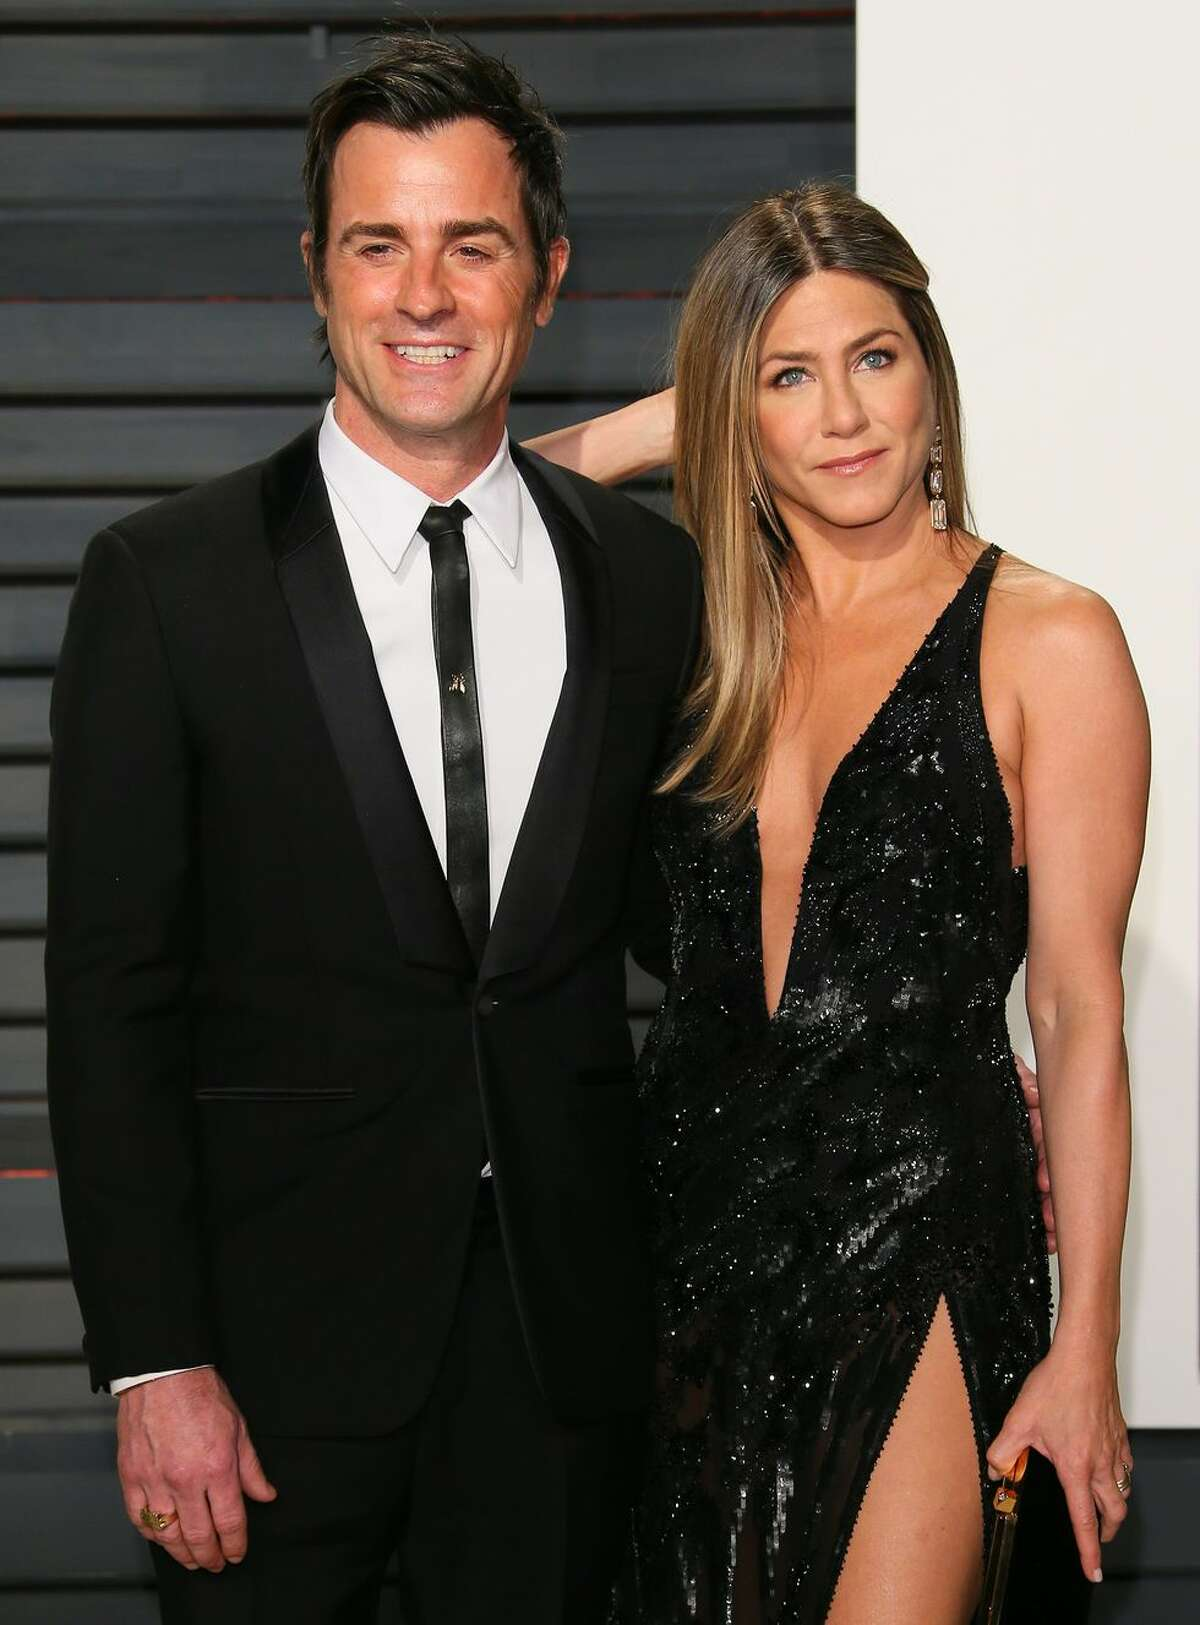 Jennifer Aniston and Justin Theroux: Unlucky in love? Just two years after their secret backyard wedding, the former